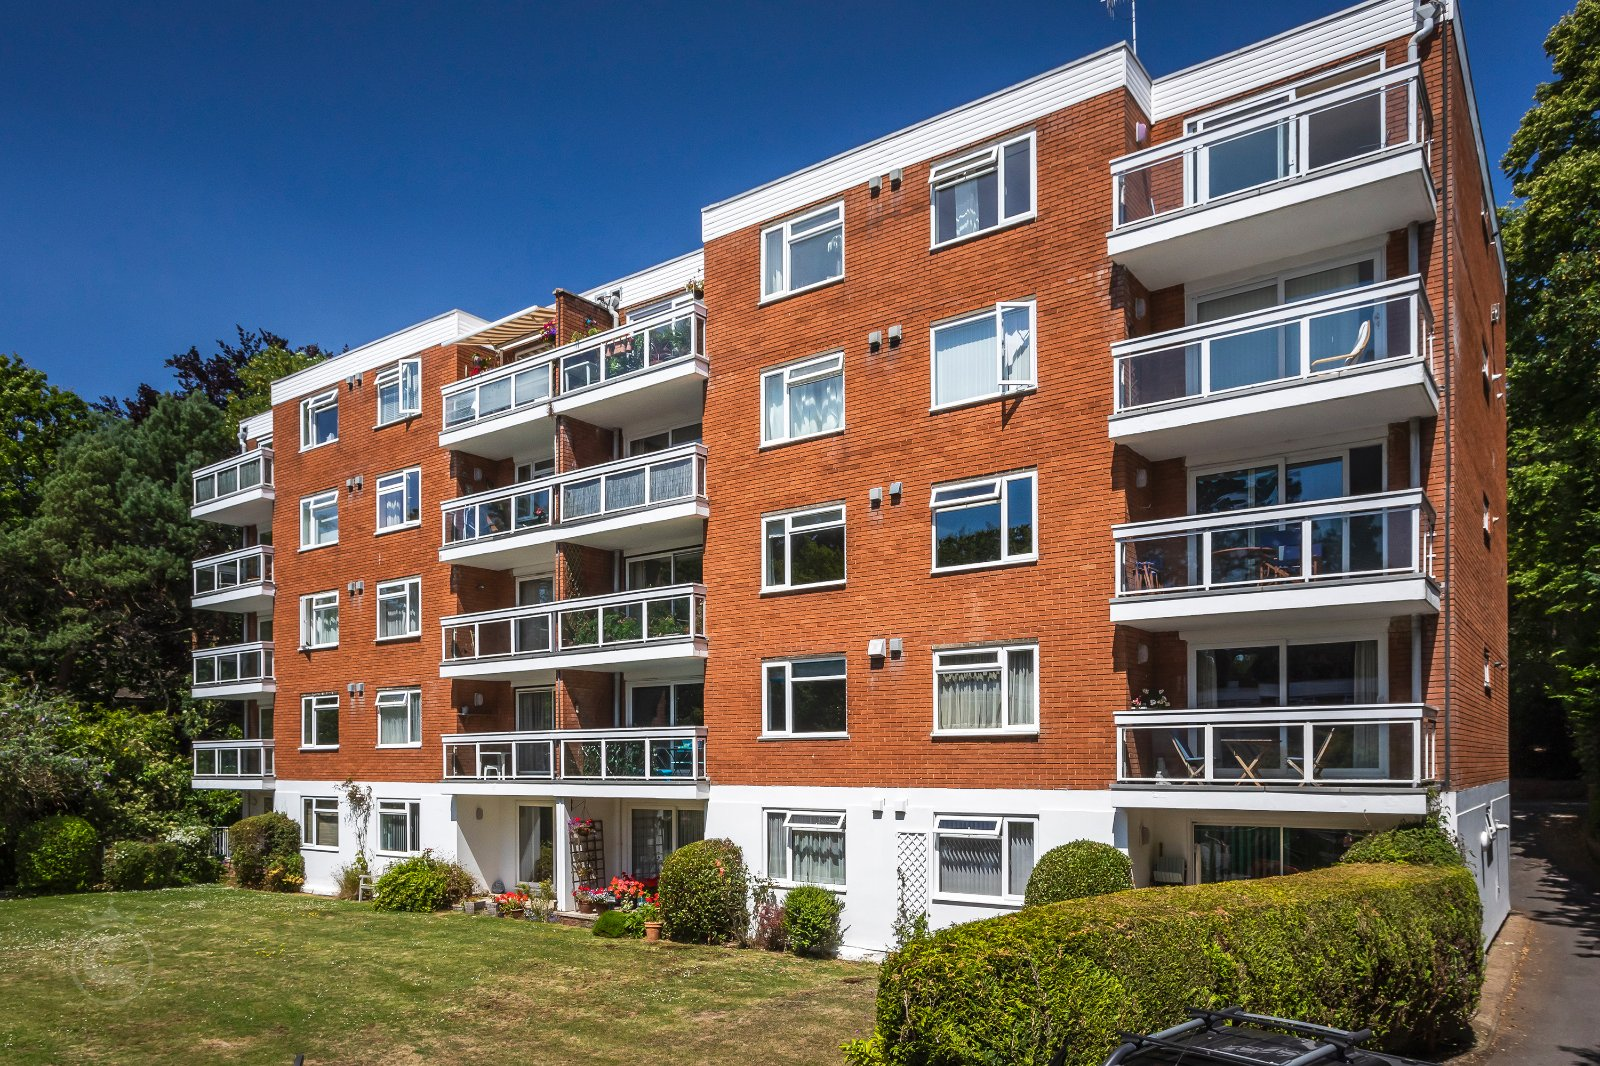 2 bed apartment to rent in Farleigh, 32A Branksome Wood Road, BH4